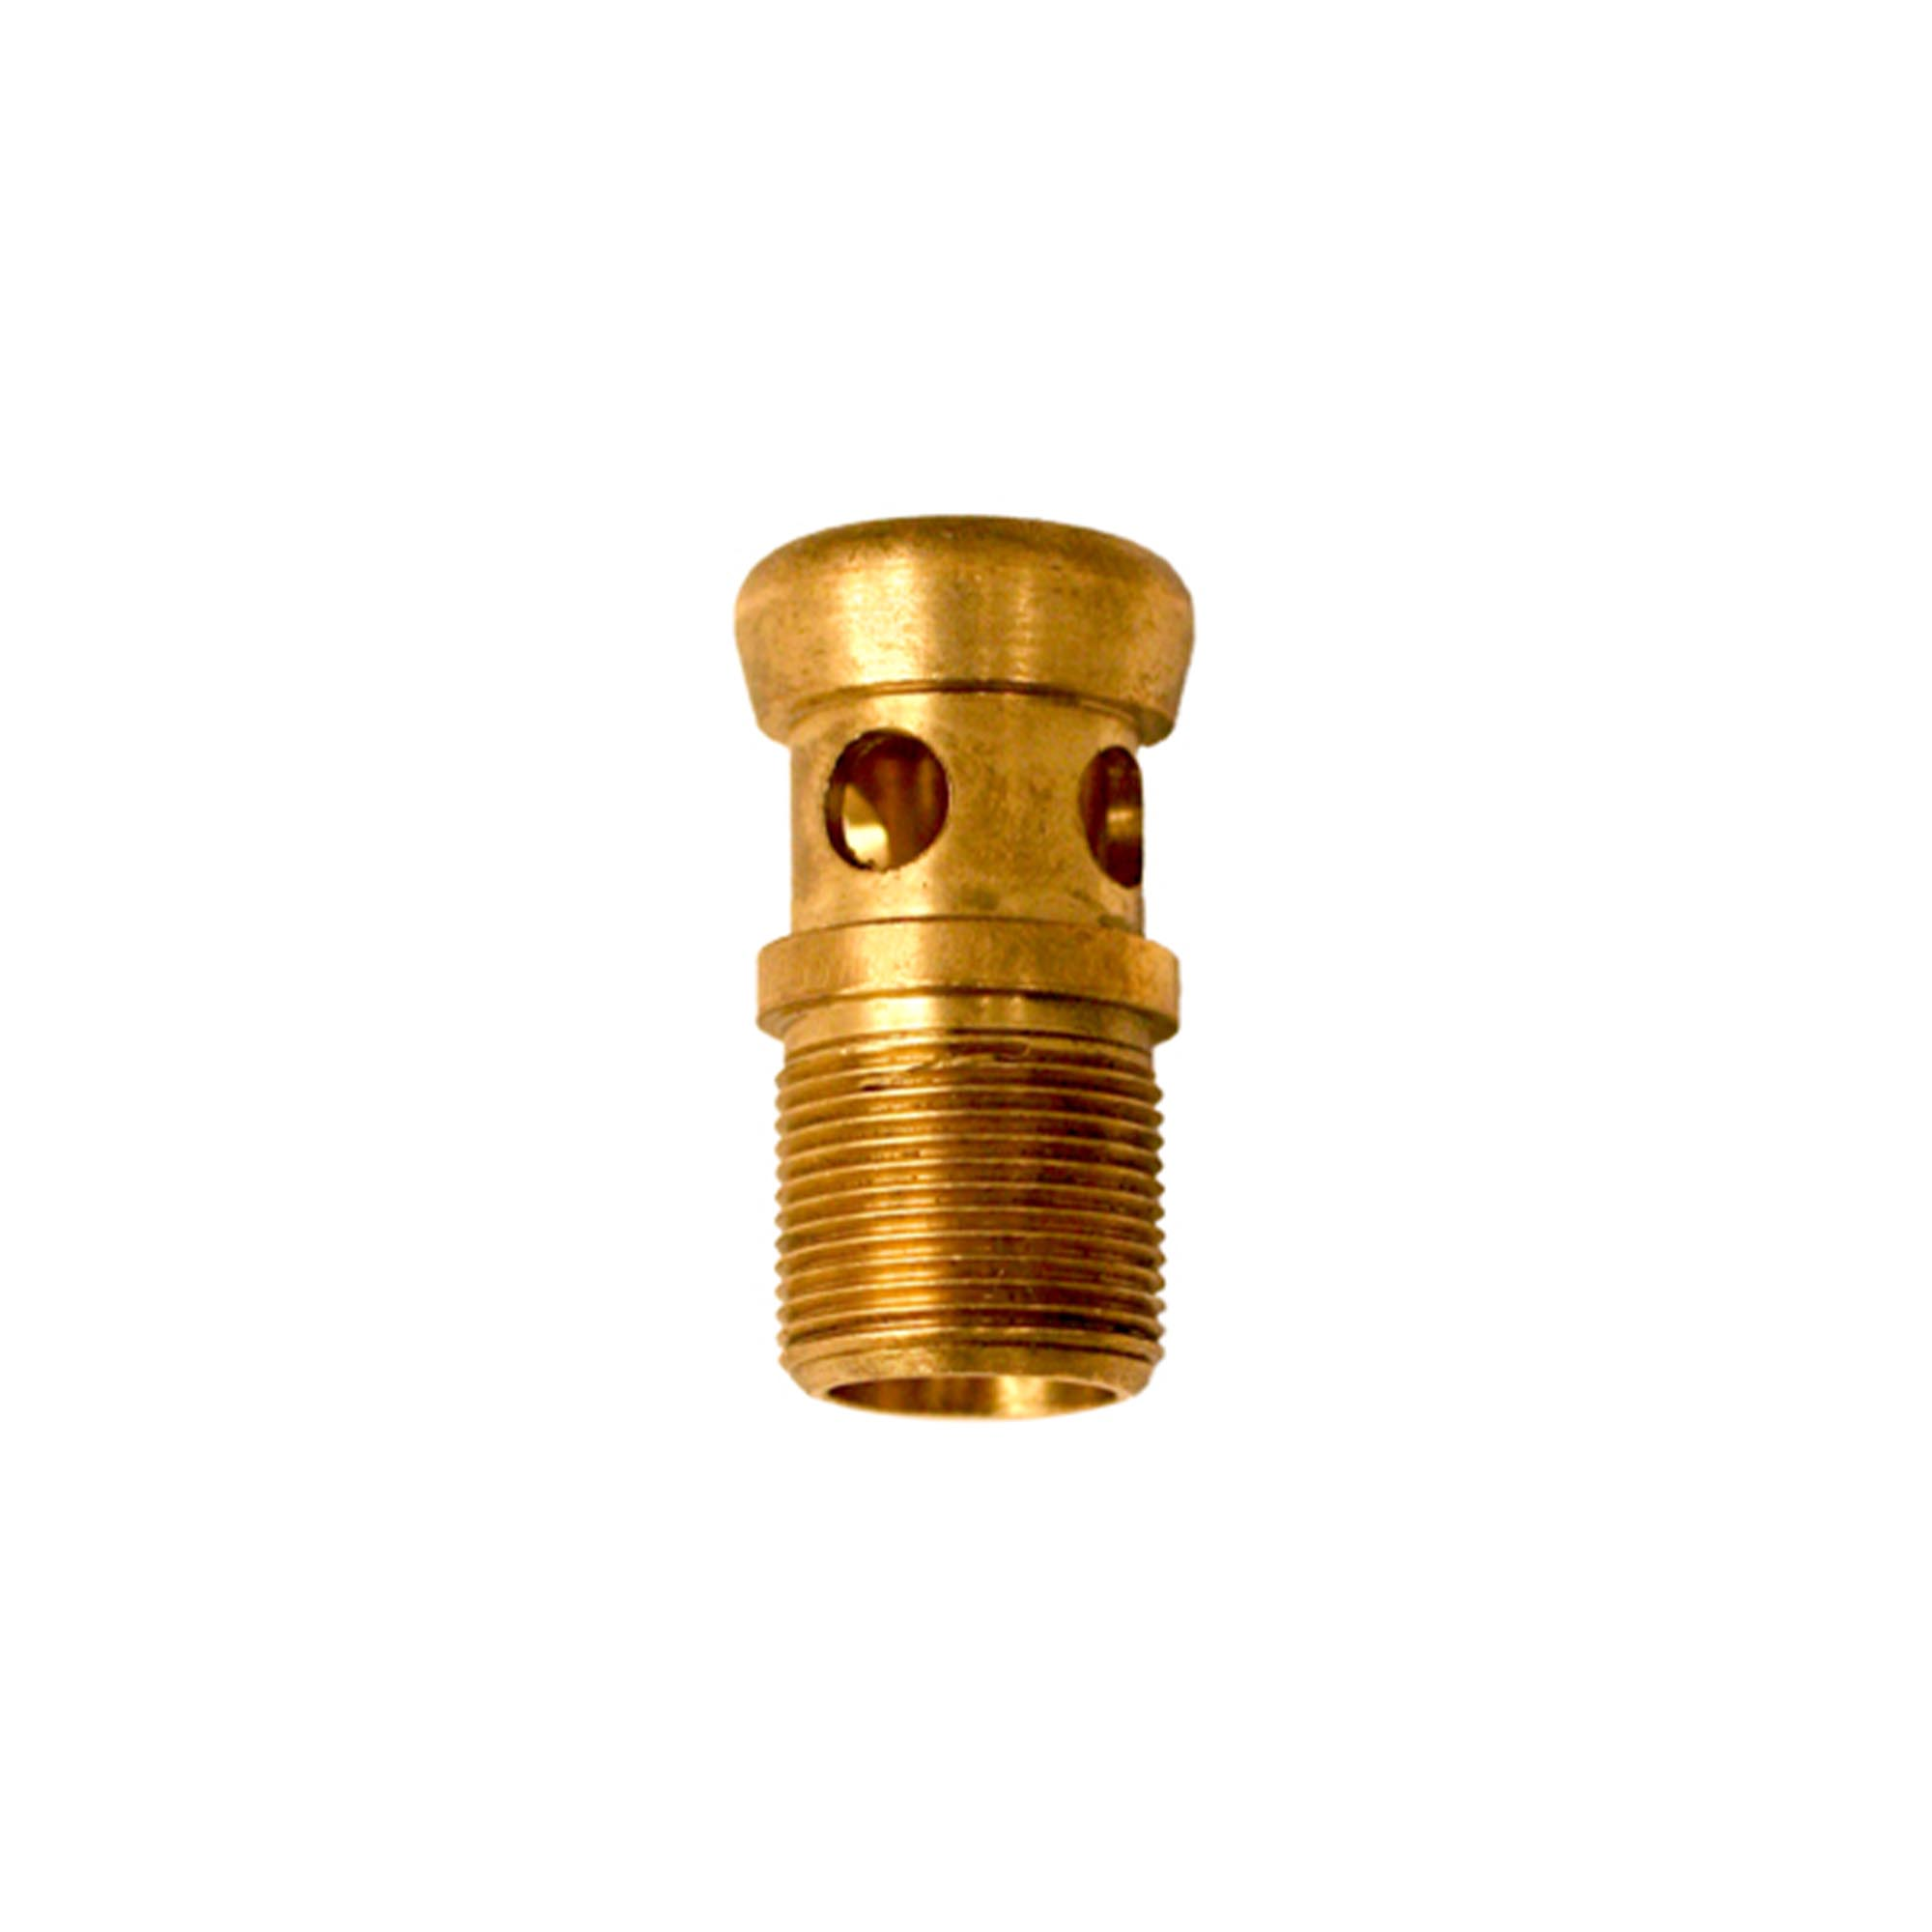 Model 3533 Hot Valves (Large)